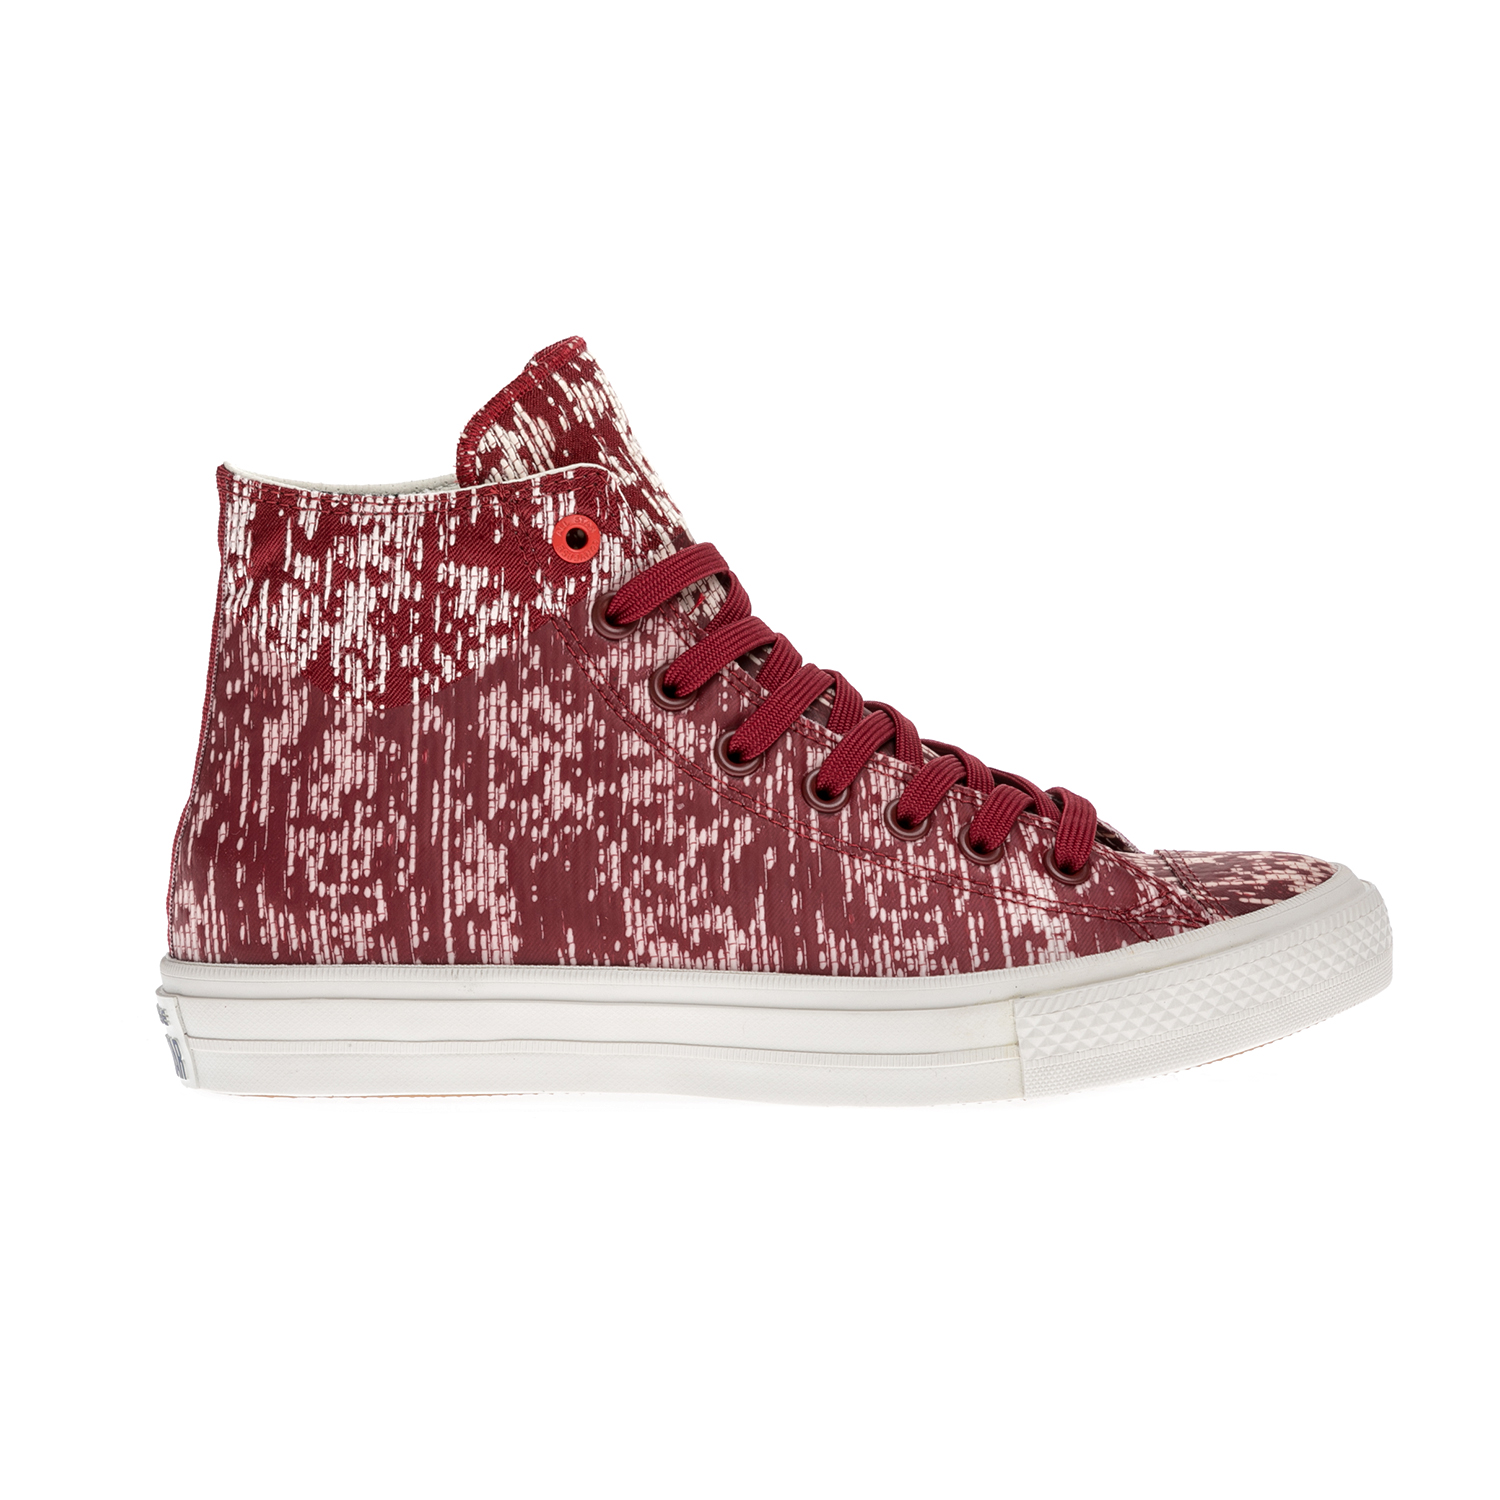 d6ad80b7c88 CONVERSE – Unisex παπούτσια Chuck Taylor All Star II Hi κόκκινα. Factory  Outlet